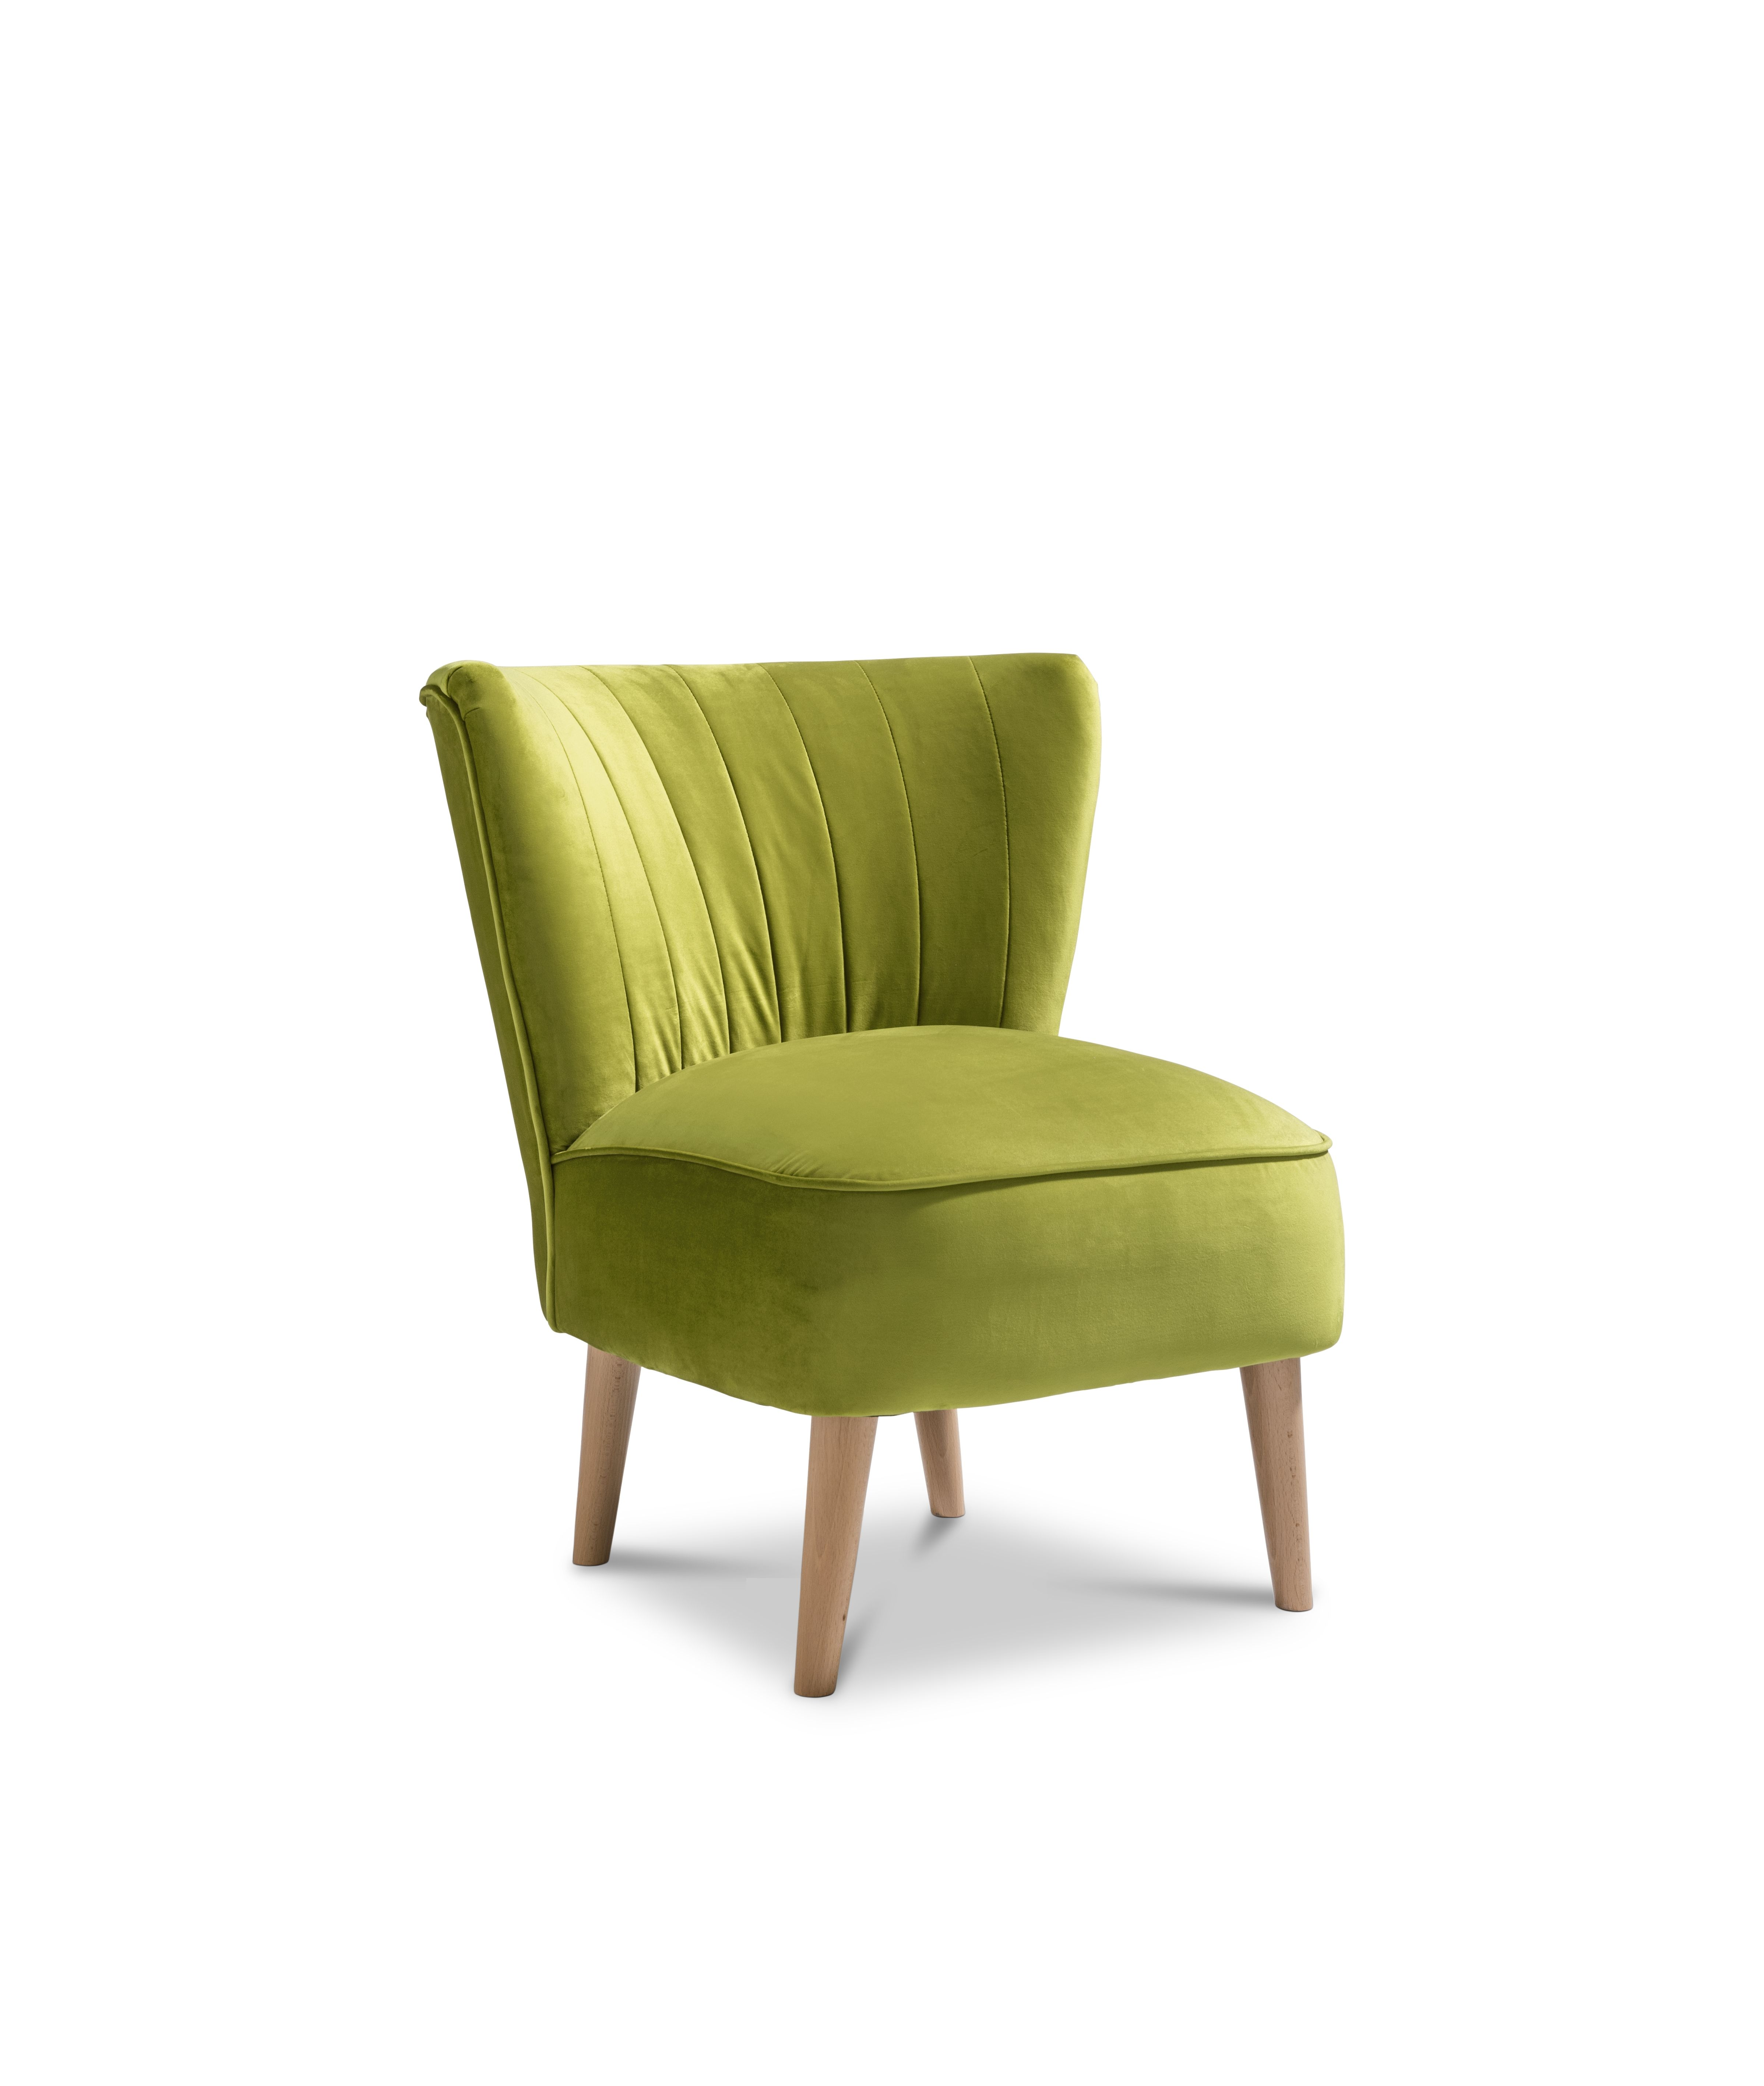 The Malmesbury Plush Accent Chair Is The Perfect Velvety Touch For